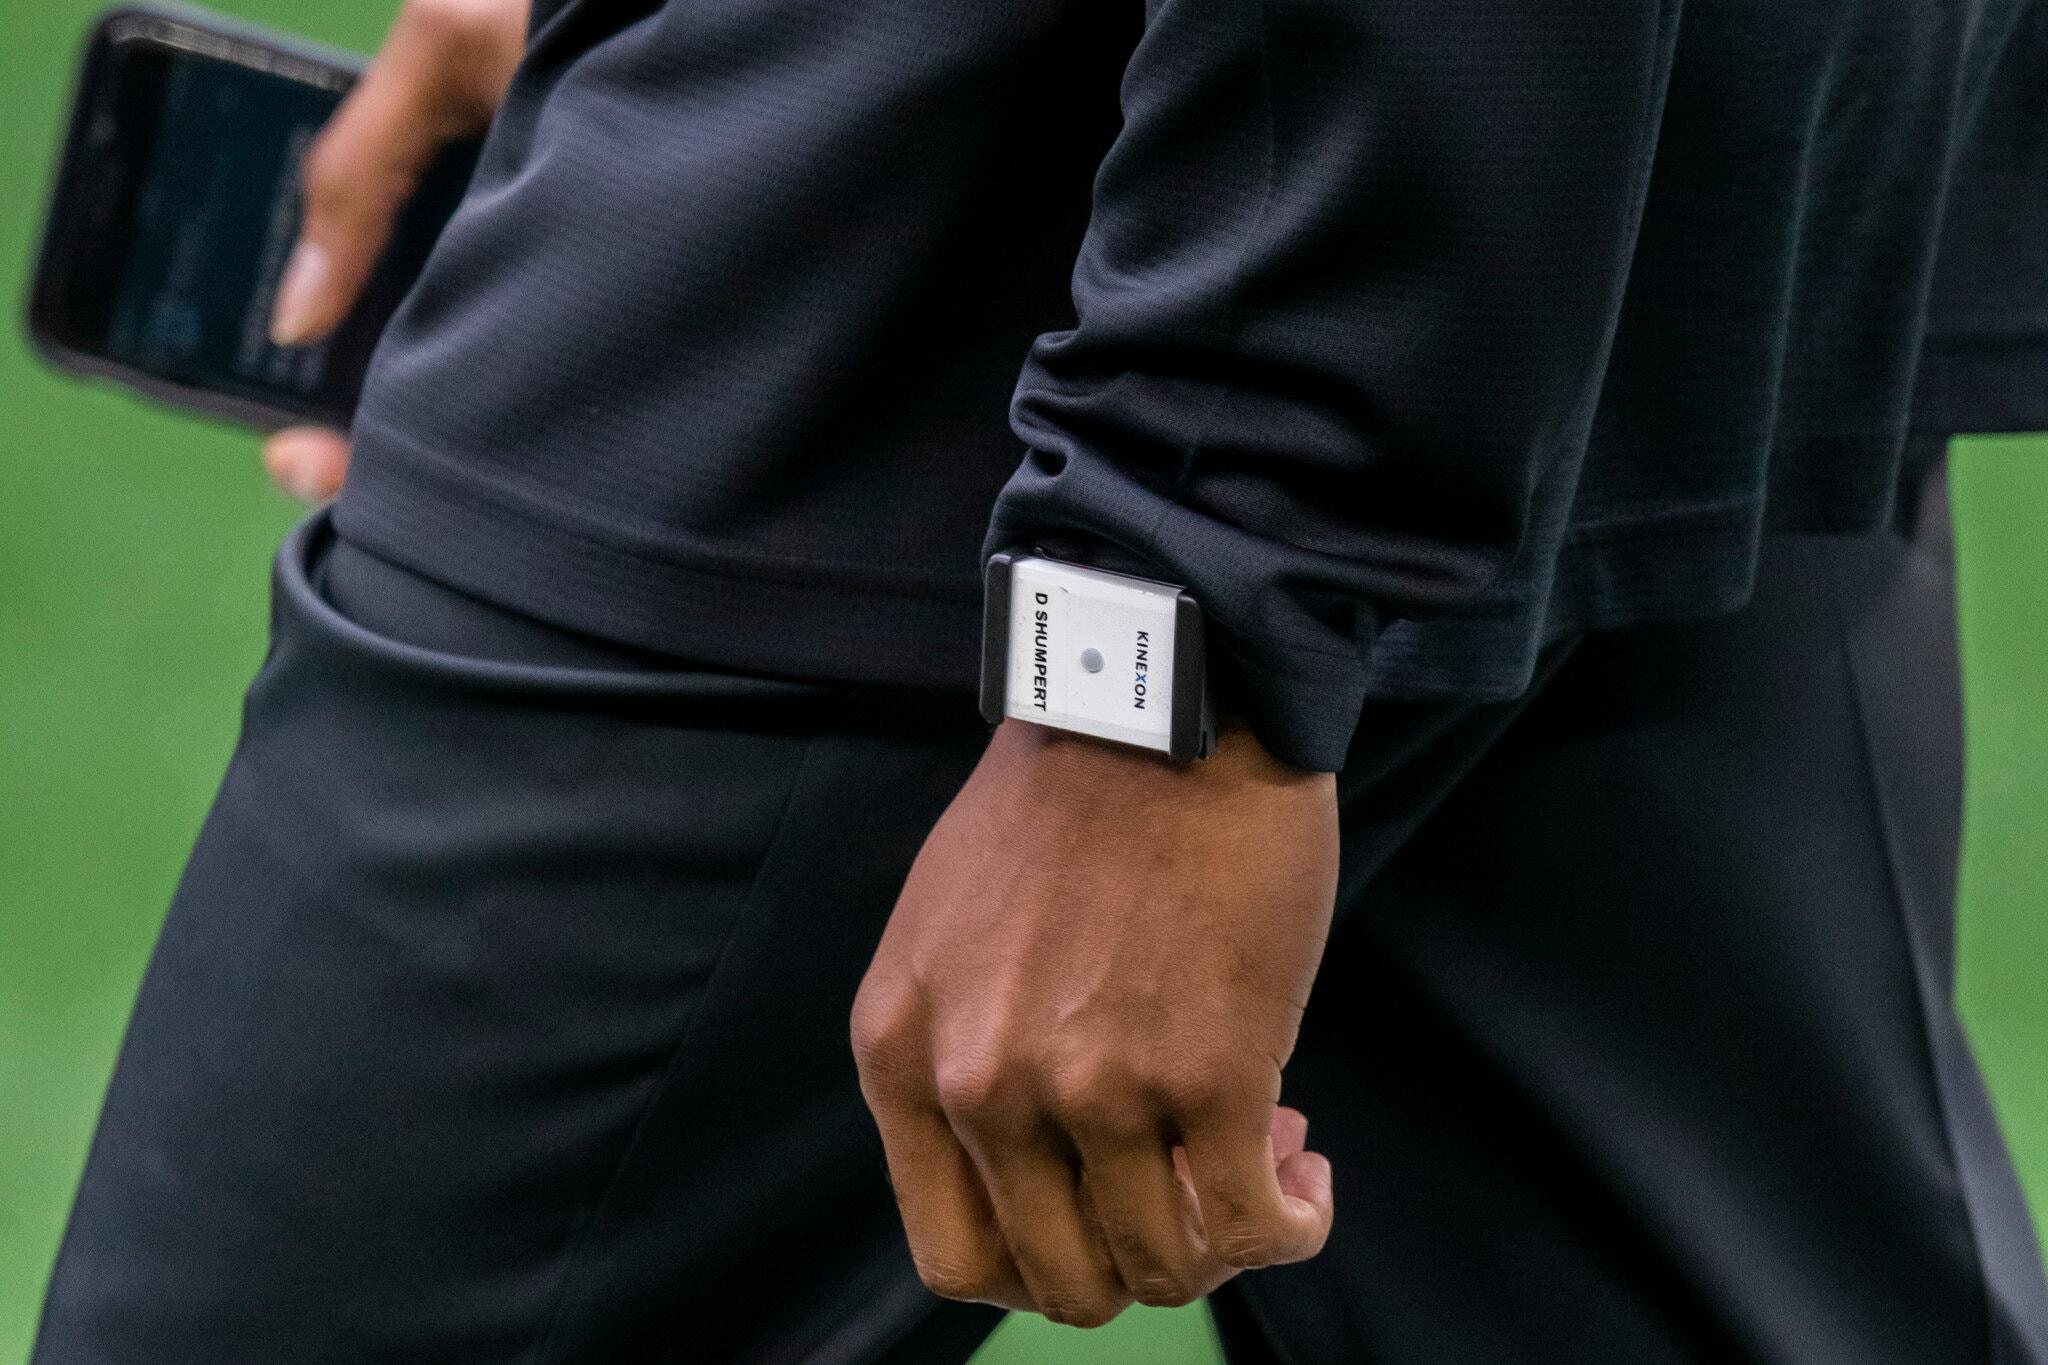 The Hot New Covid Tech Is Wearable and Constantly Tracks You Thumbnail